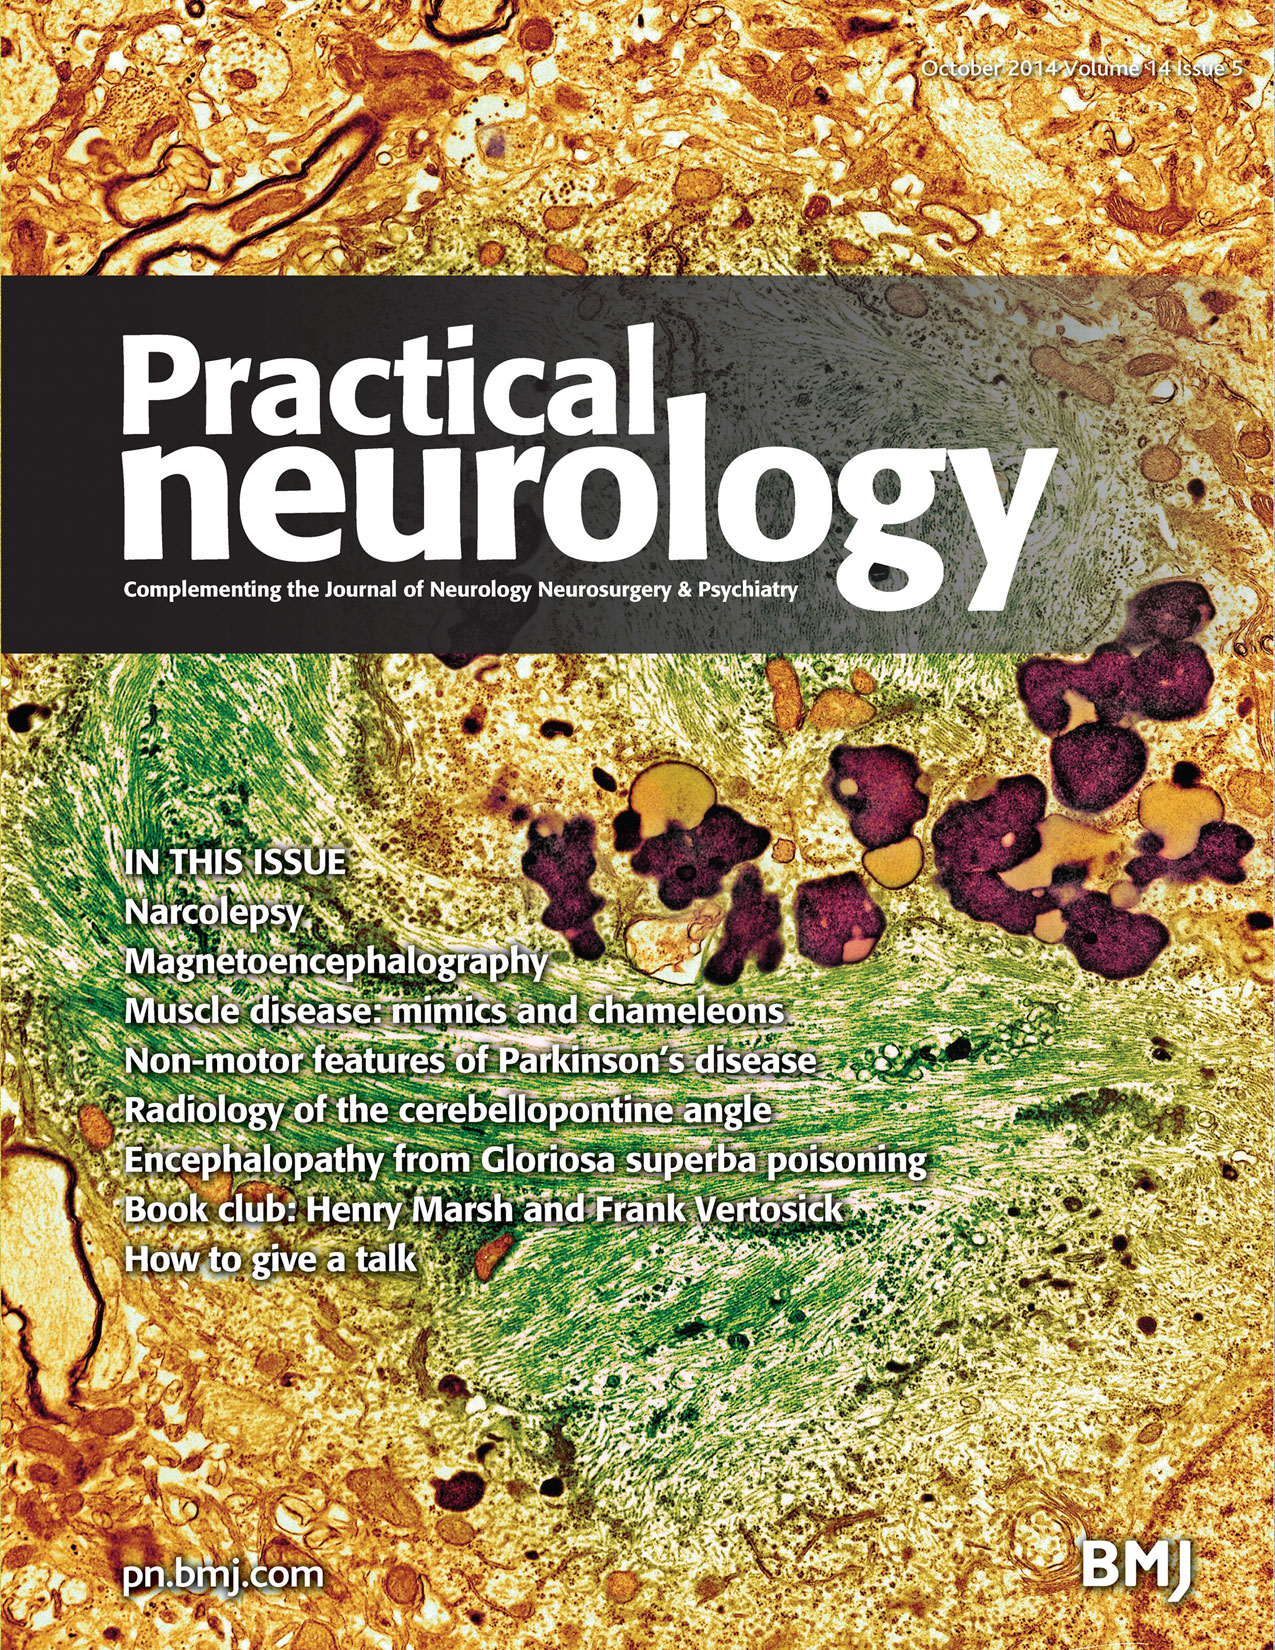 Practical Neurology October 2014